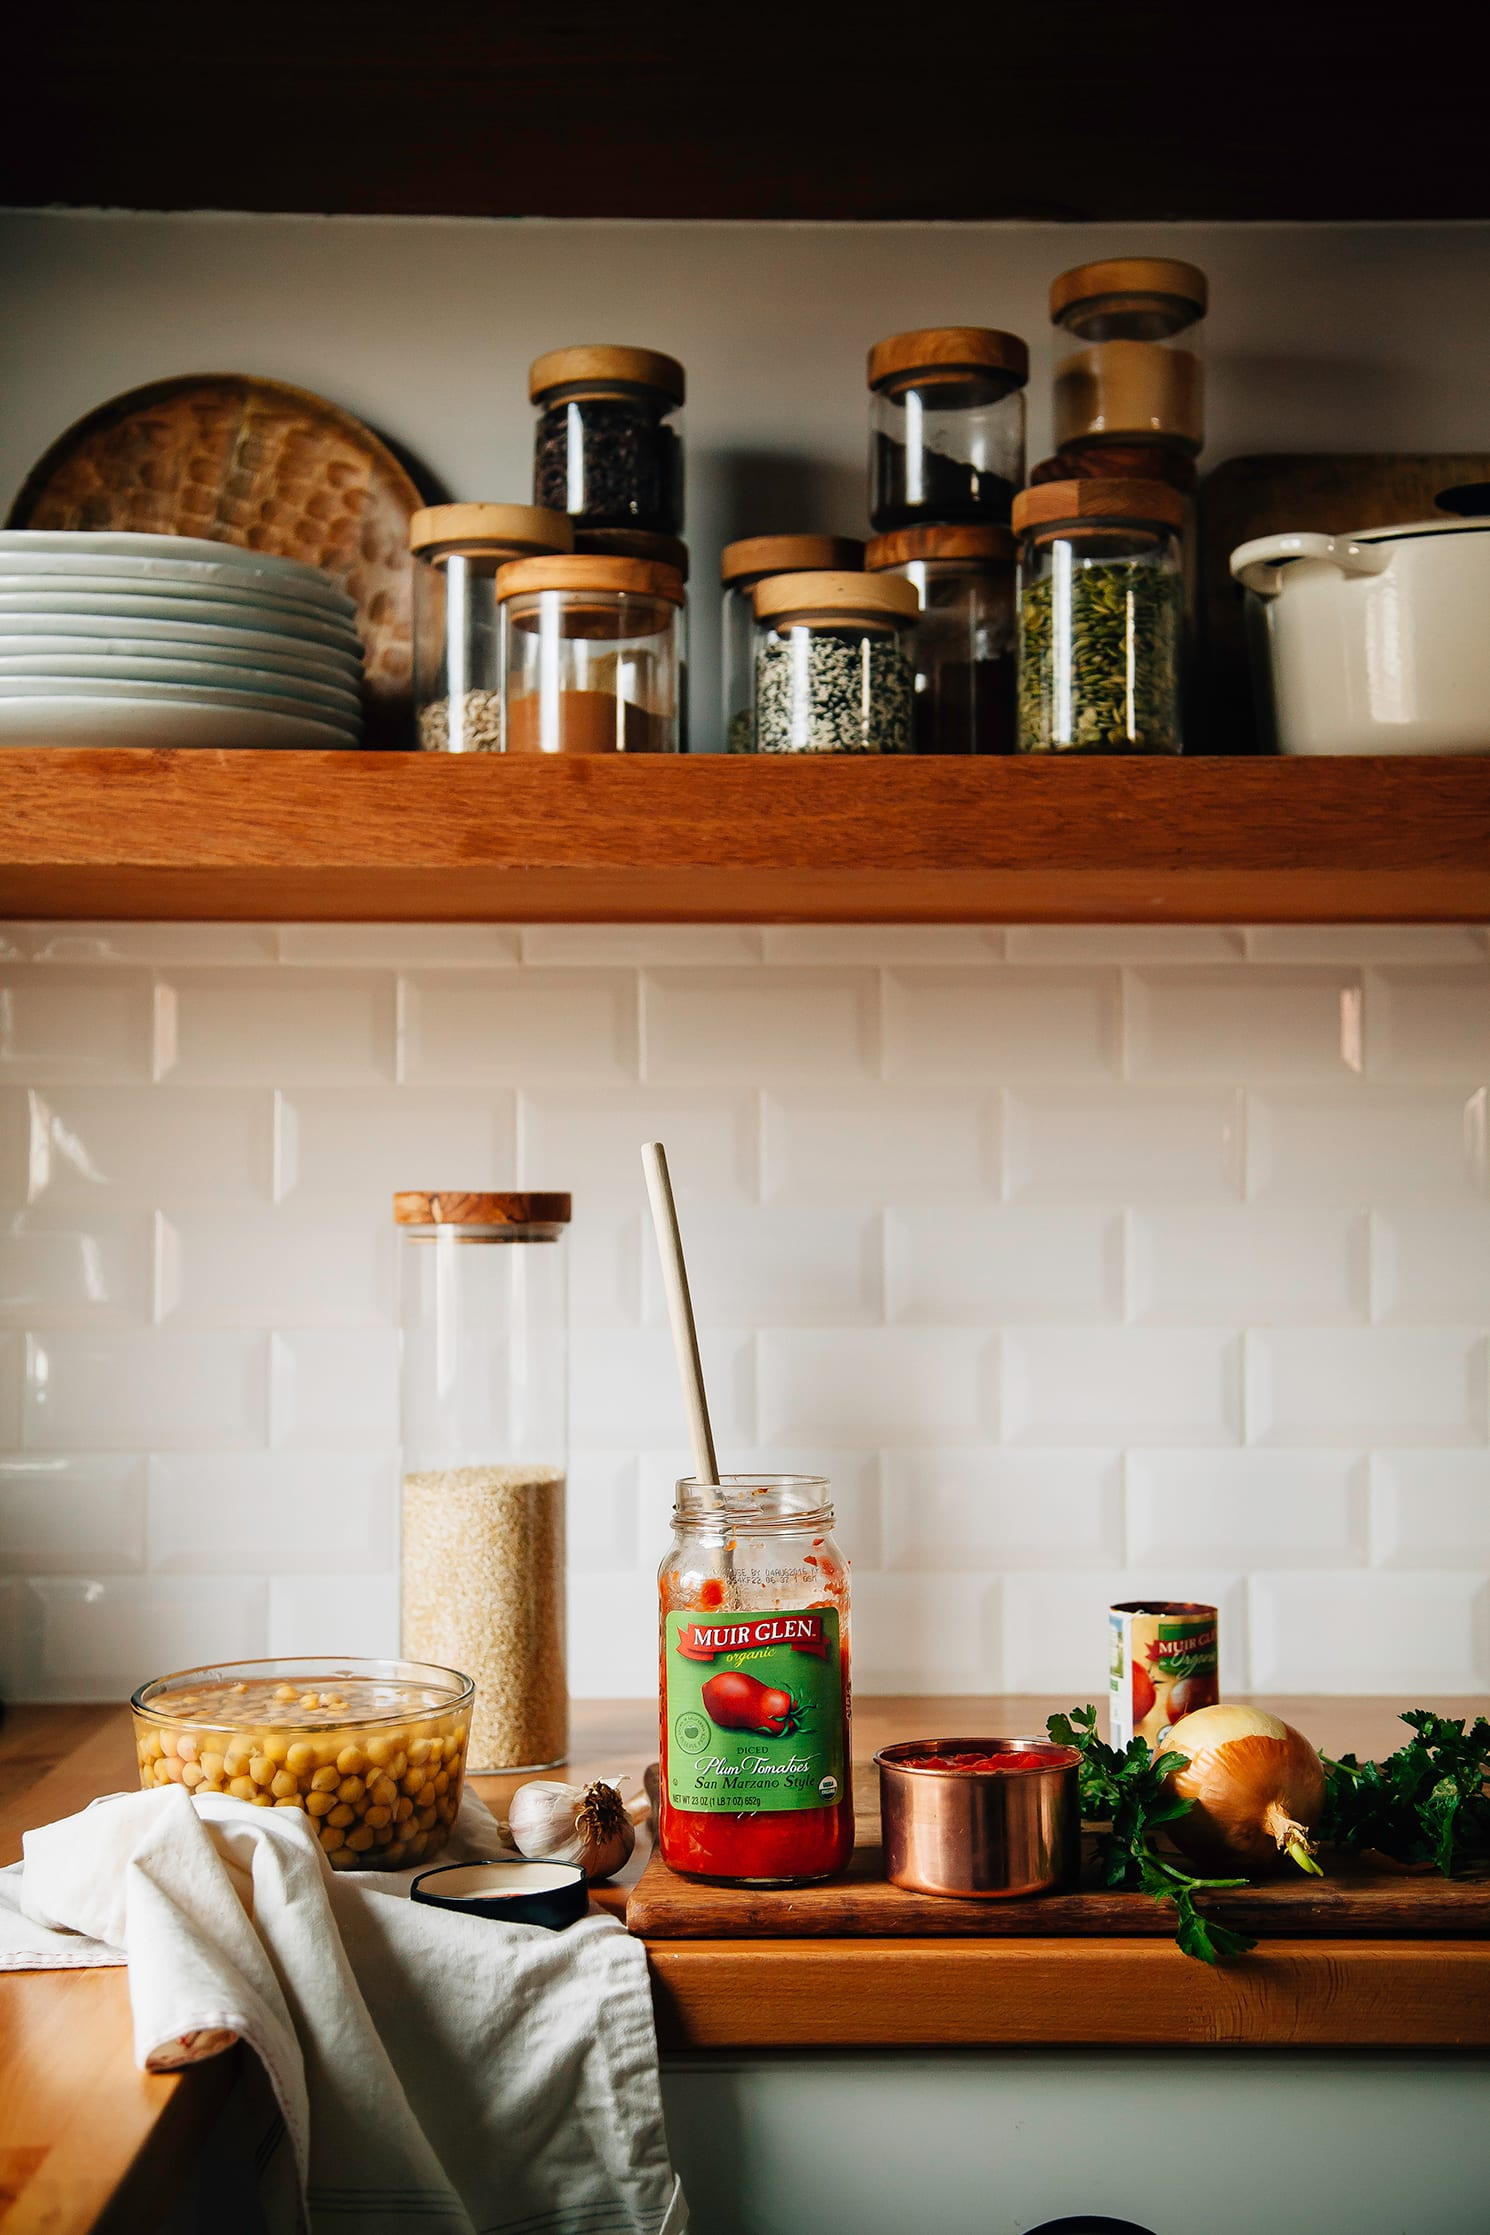 A head on shot of my butcher block kitchen counter with a jar of crushed tomatoes on top, along with a container of chickpeas, a container of millet, some parsley and an onion. White subway tile and open kitchen shelves are in the background.